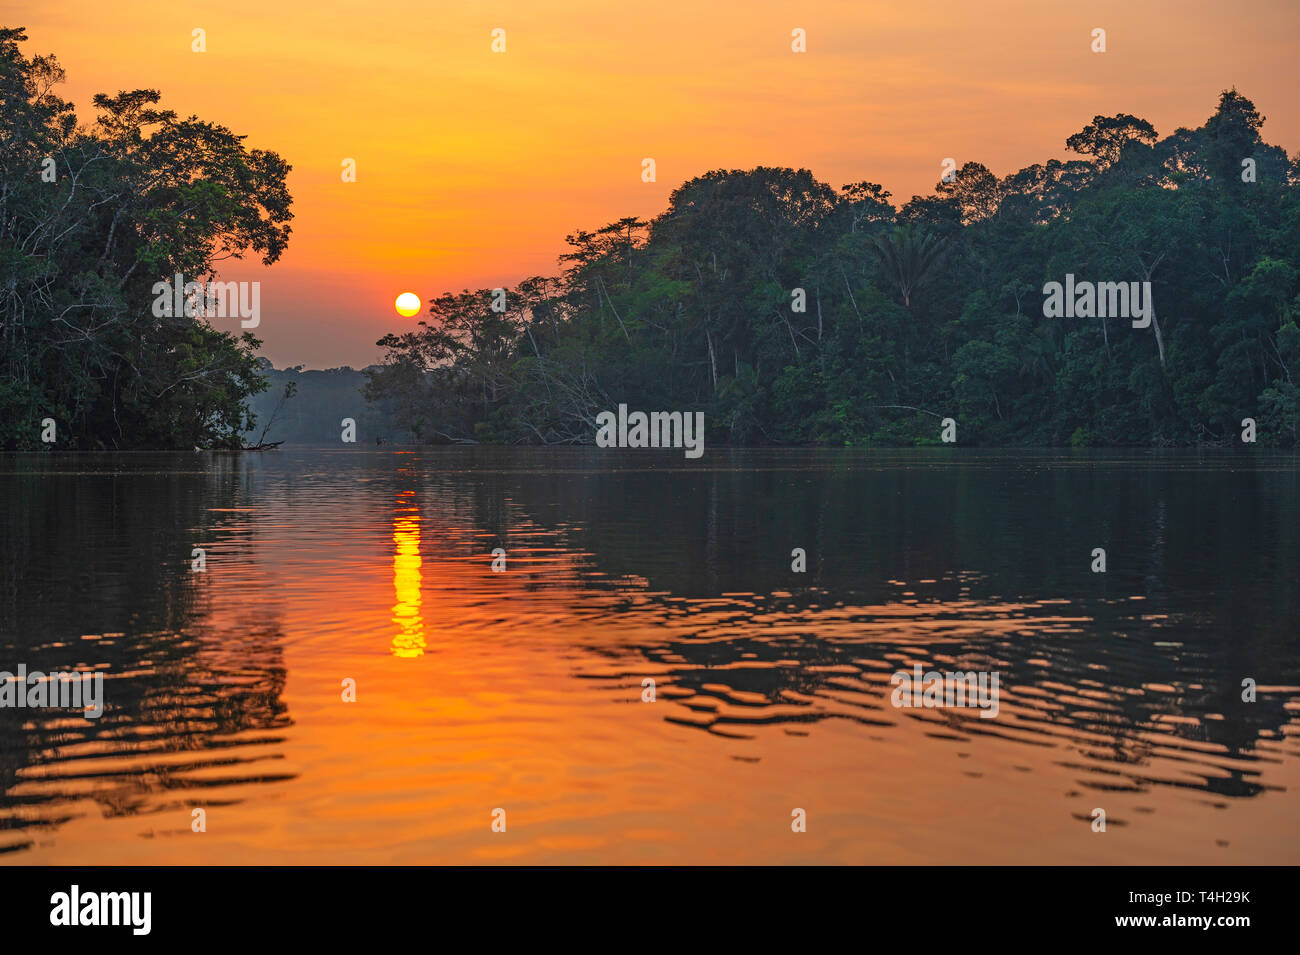 Sunset Reflection in Yasuni national park. The Amazon river basin is found in Brazil, Bolivia, Colombia, Ecuador, Guyana, Suriname, Peru and Venezuela. - Stock Image